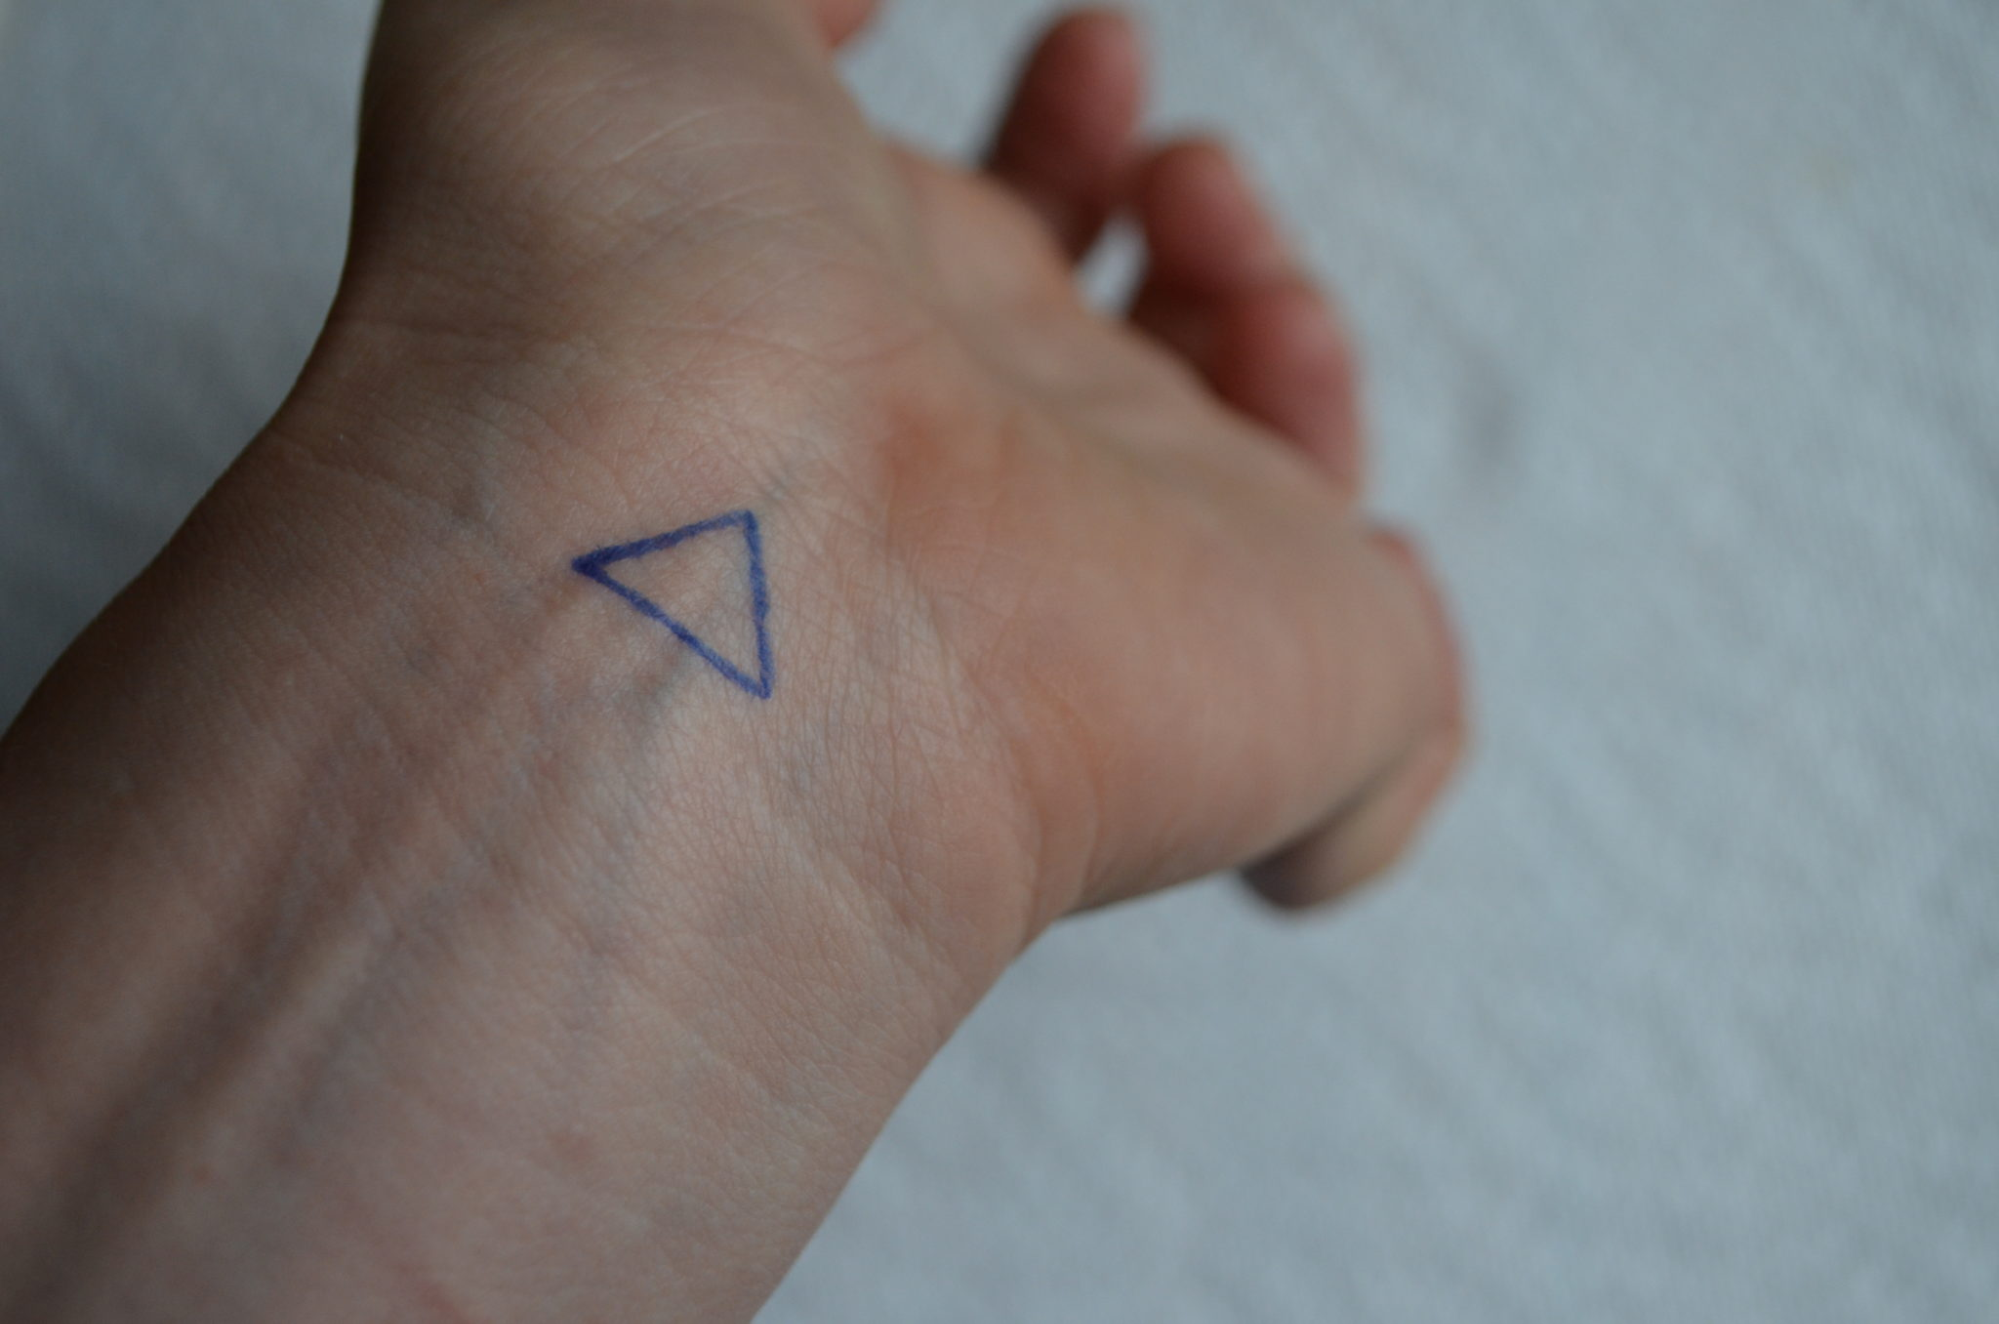 Small Triangle Wrist Tattoo Design Idea